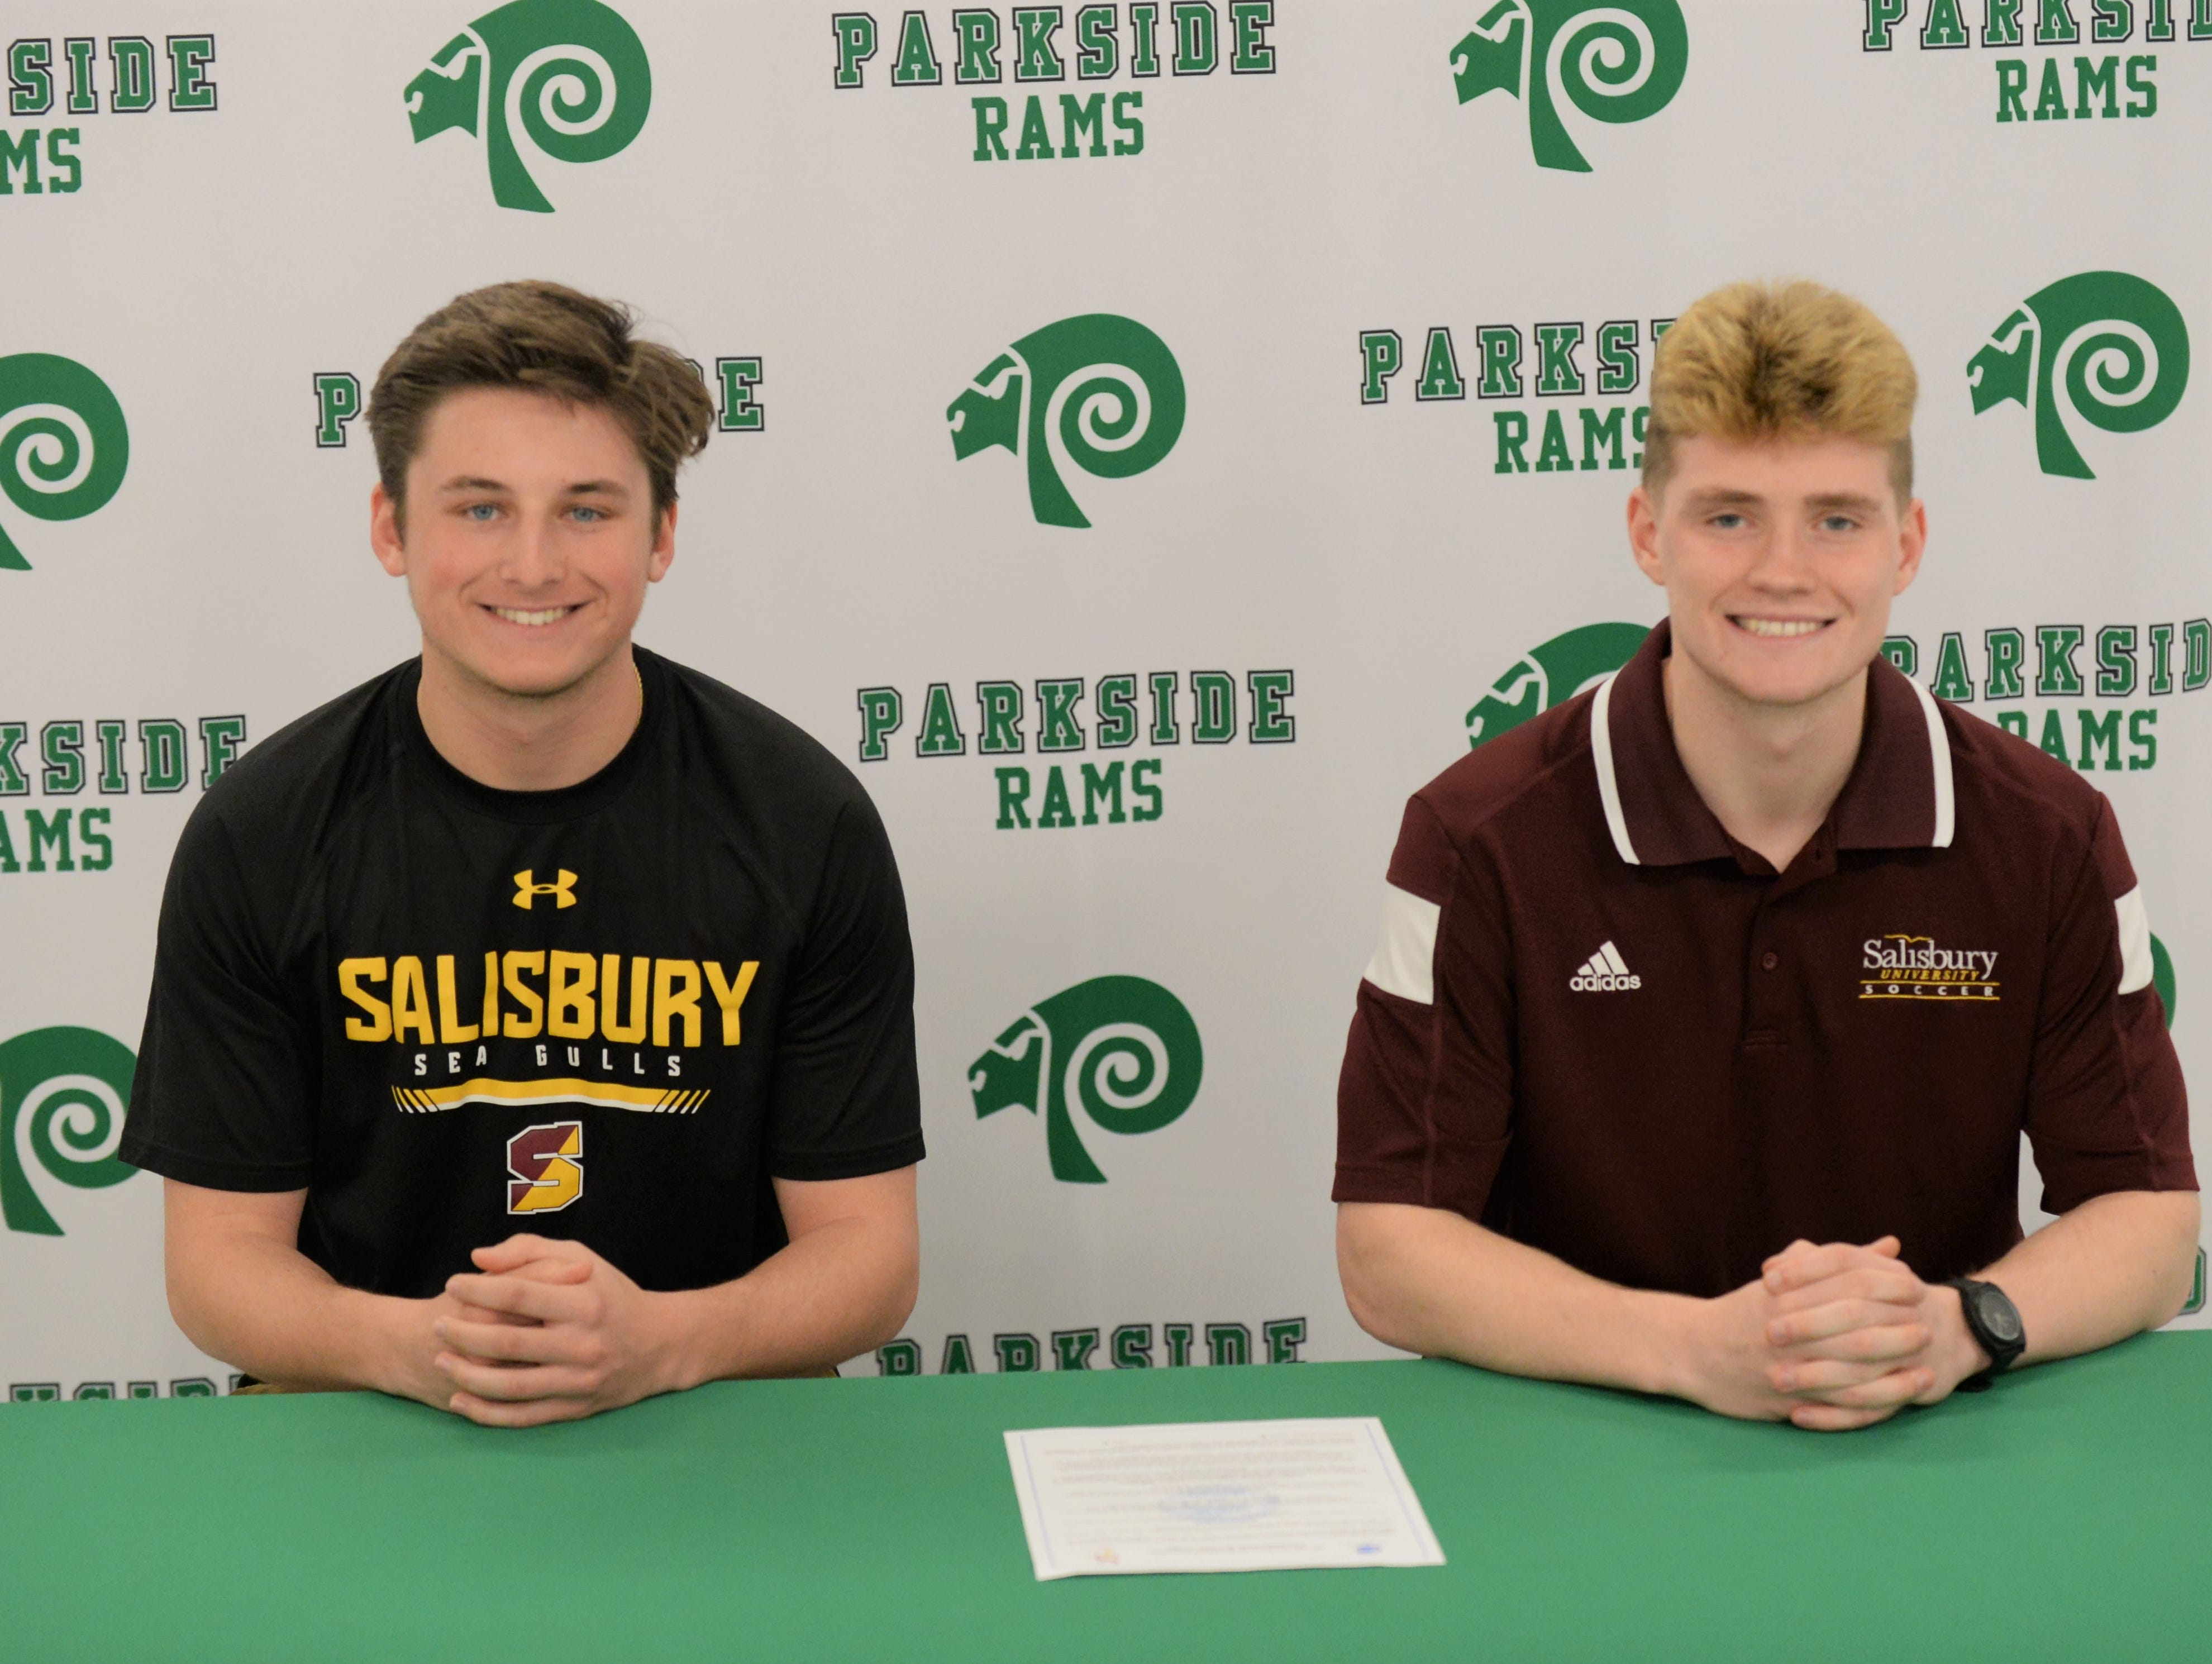 Parkside's Kade Johnson (left) and Mark Zimmerman announce their intent to play soccer at Salisbury University following graduation.